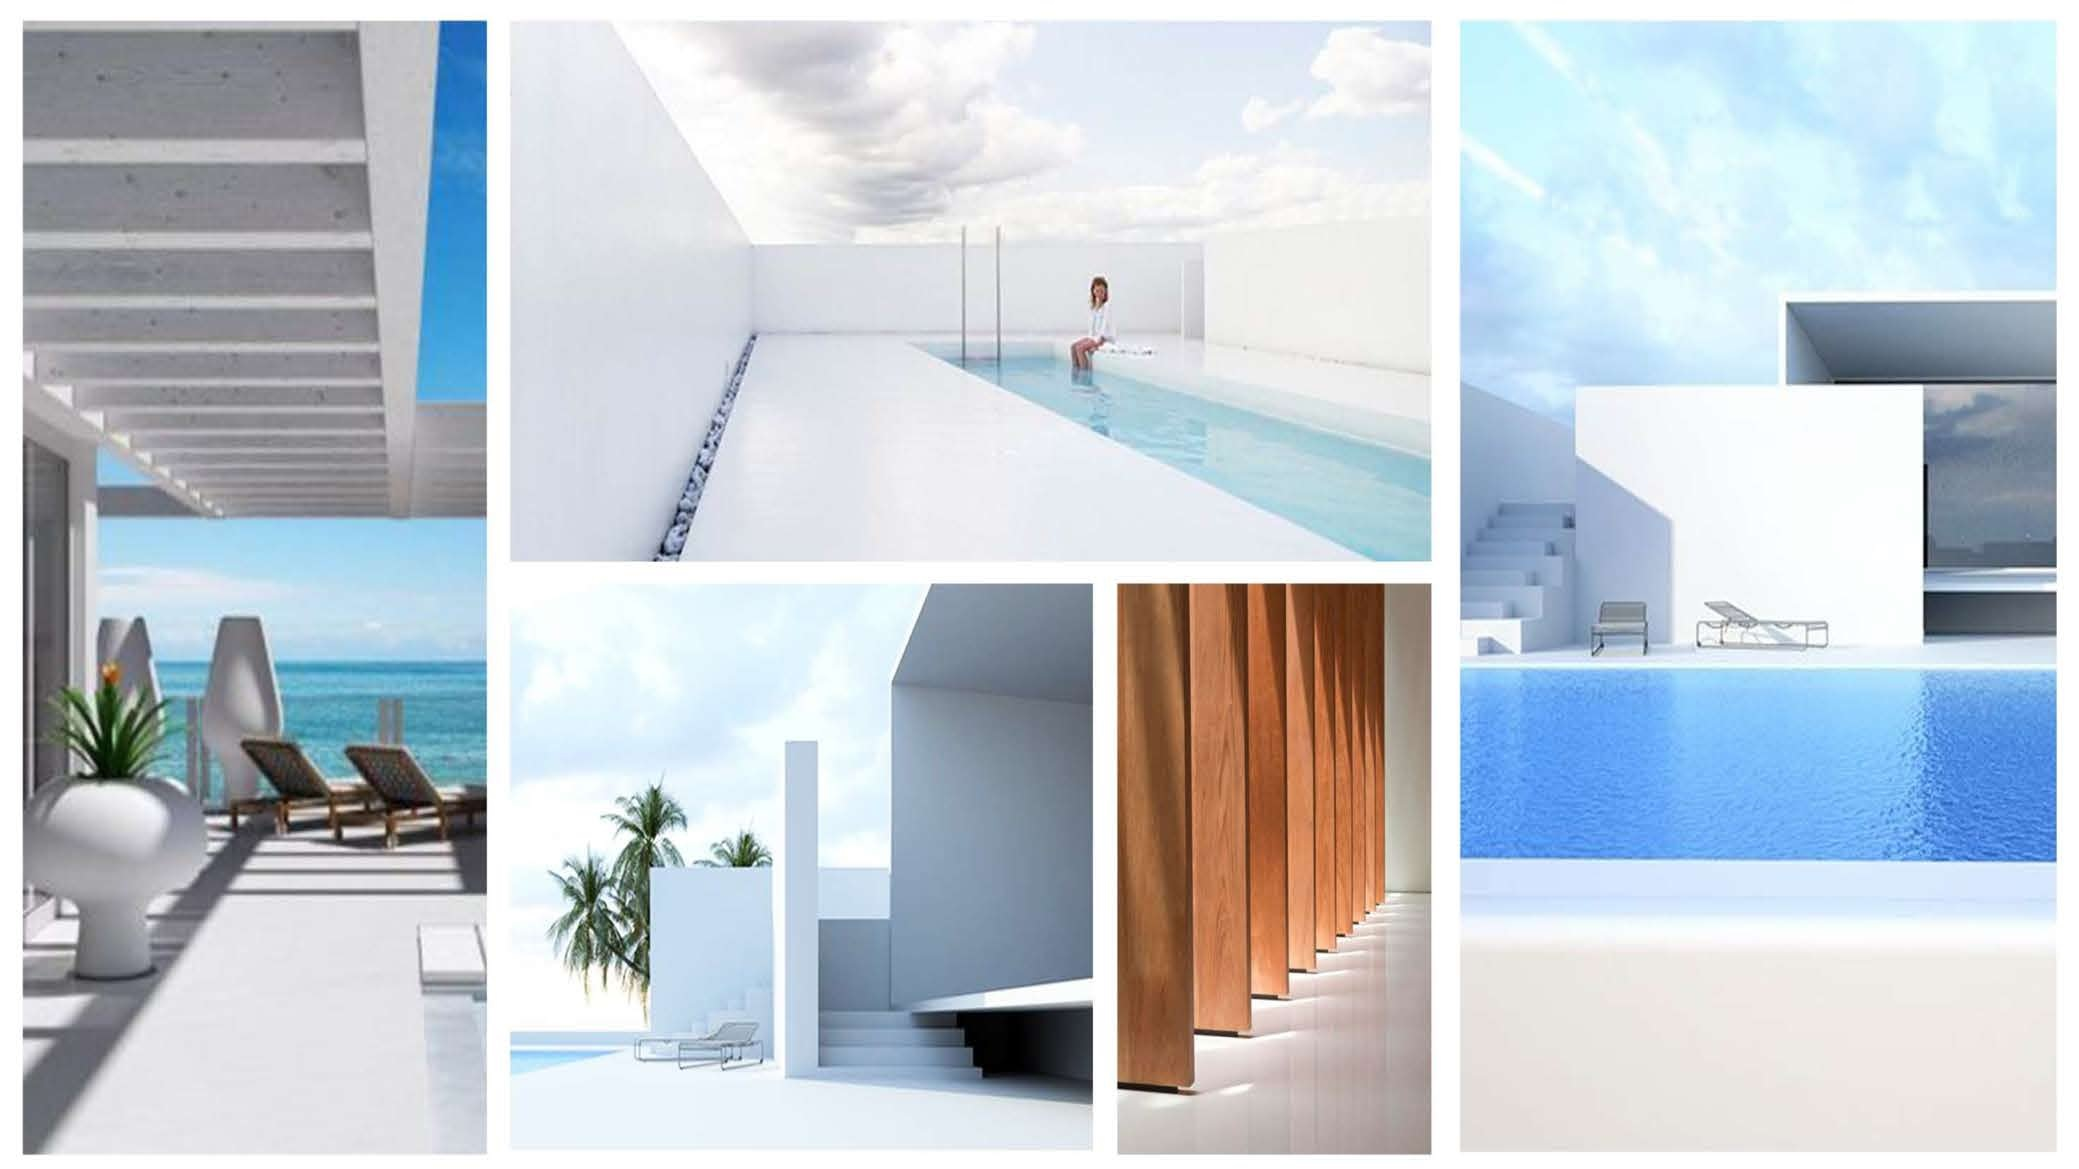 ARCHITECTURAL MOOD 01